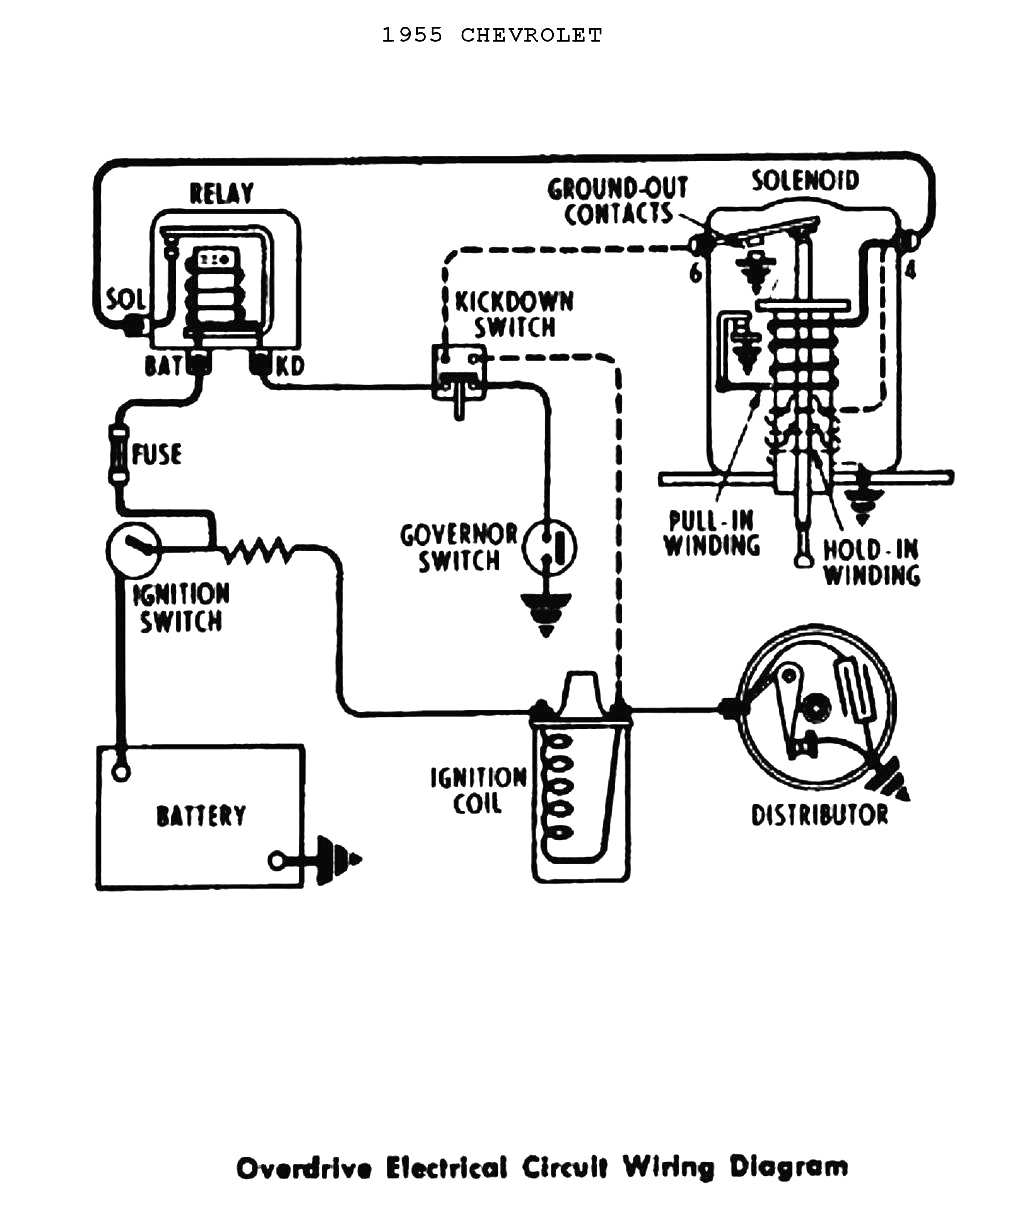 hight resolution of spark plug wiring diagram chevy 350